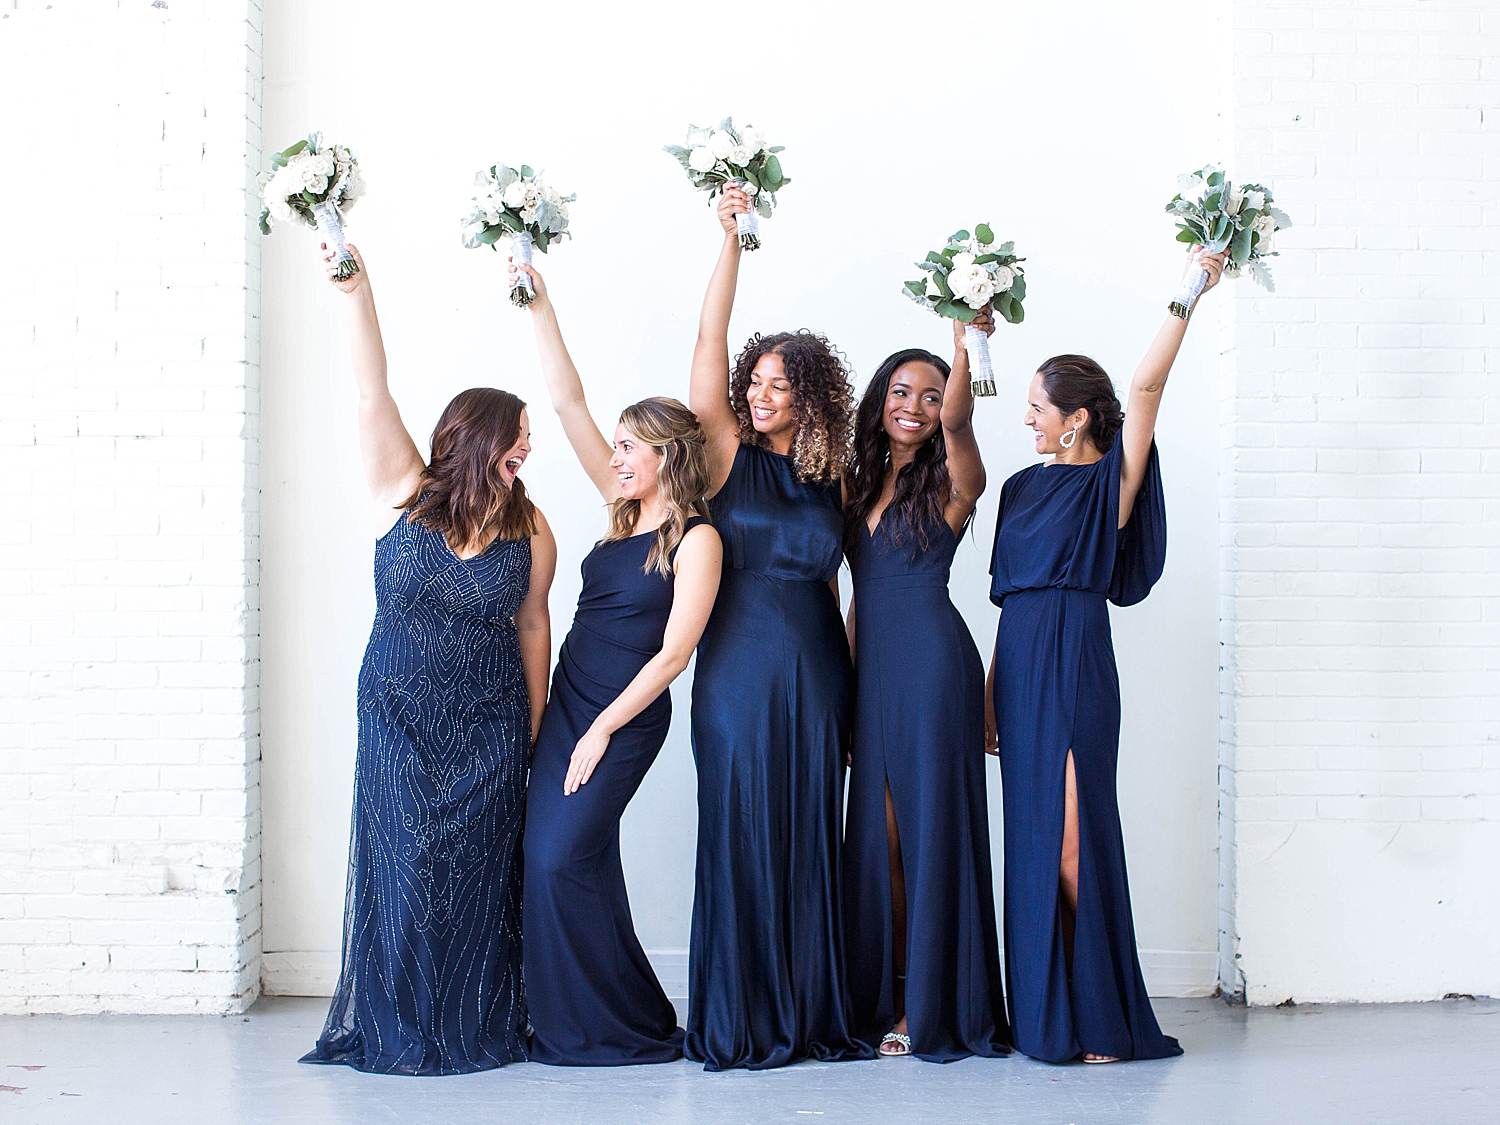 BHLDN Bridesmaids Dresses Campaign Philadelphia New Jersey Wedding Fashion Photography by Kelee Bovelle_0015.jpg